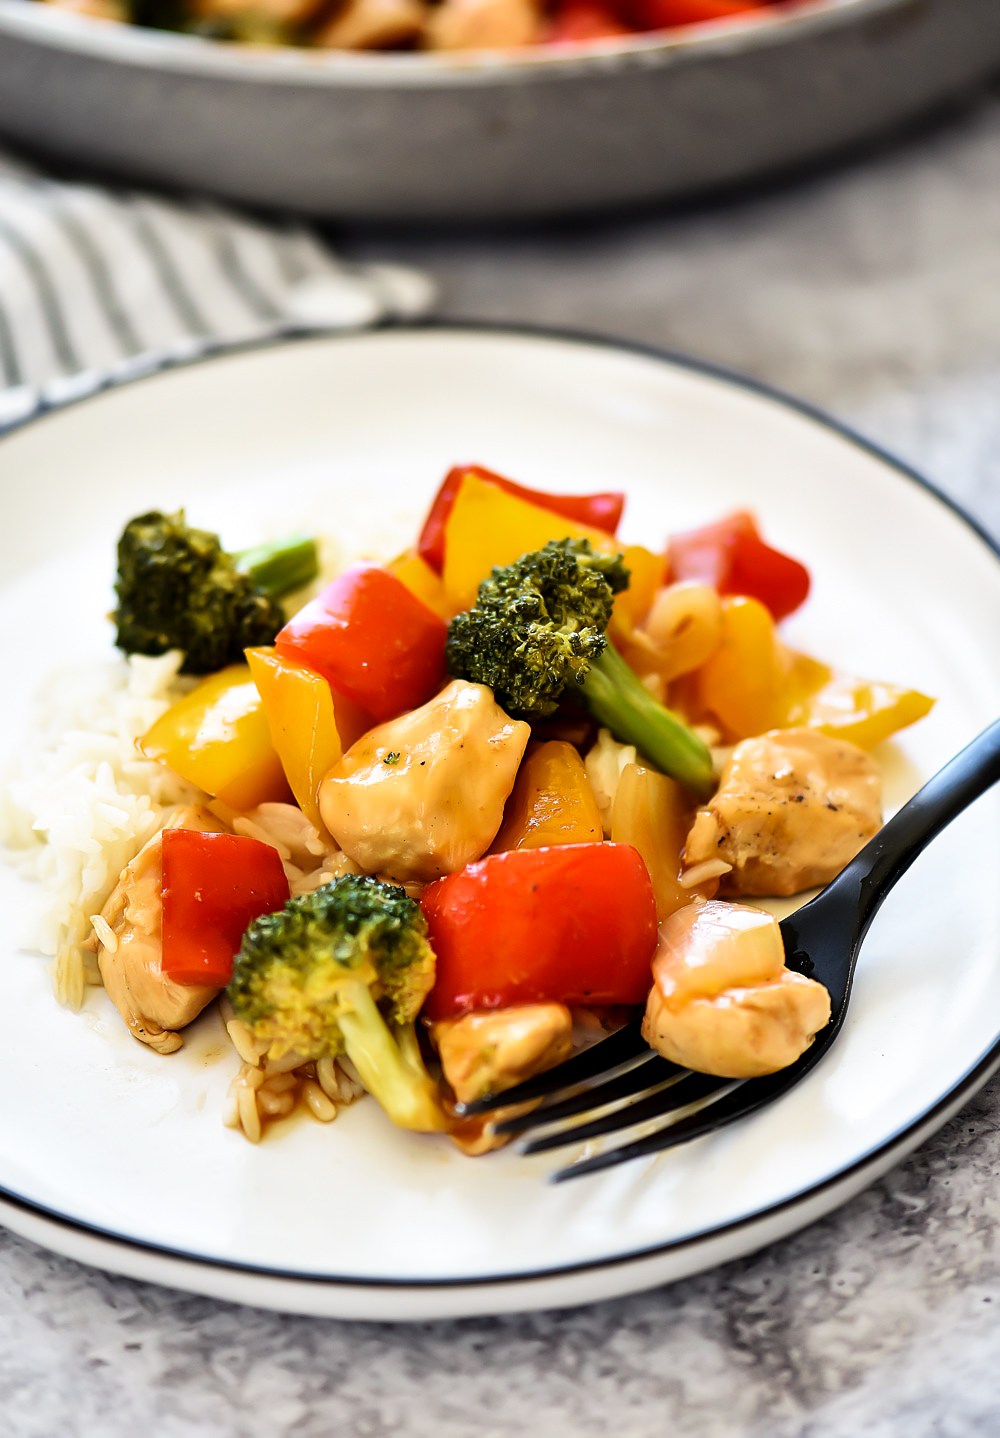 Chicken Stir Fry is seasoned chicken, red bell peppers, and onion served over a bed of brown rice. Life-in-the-Lofthouse.com